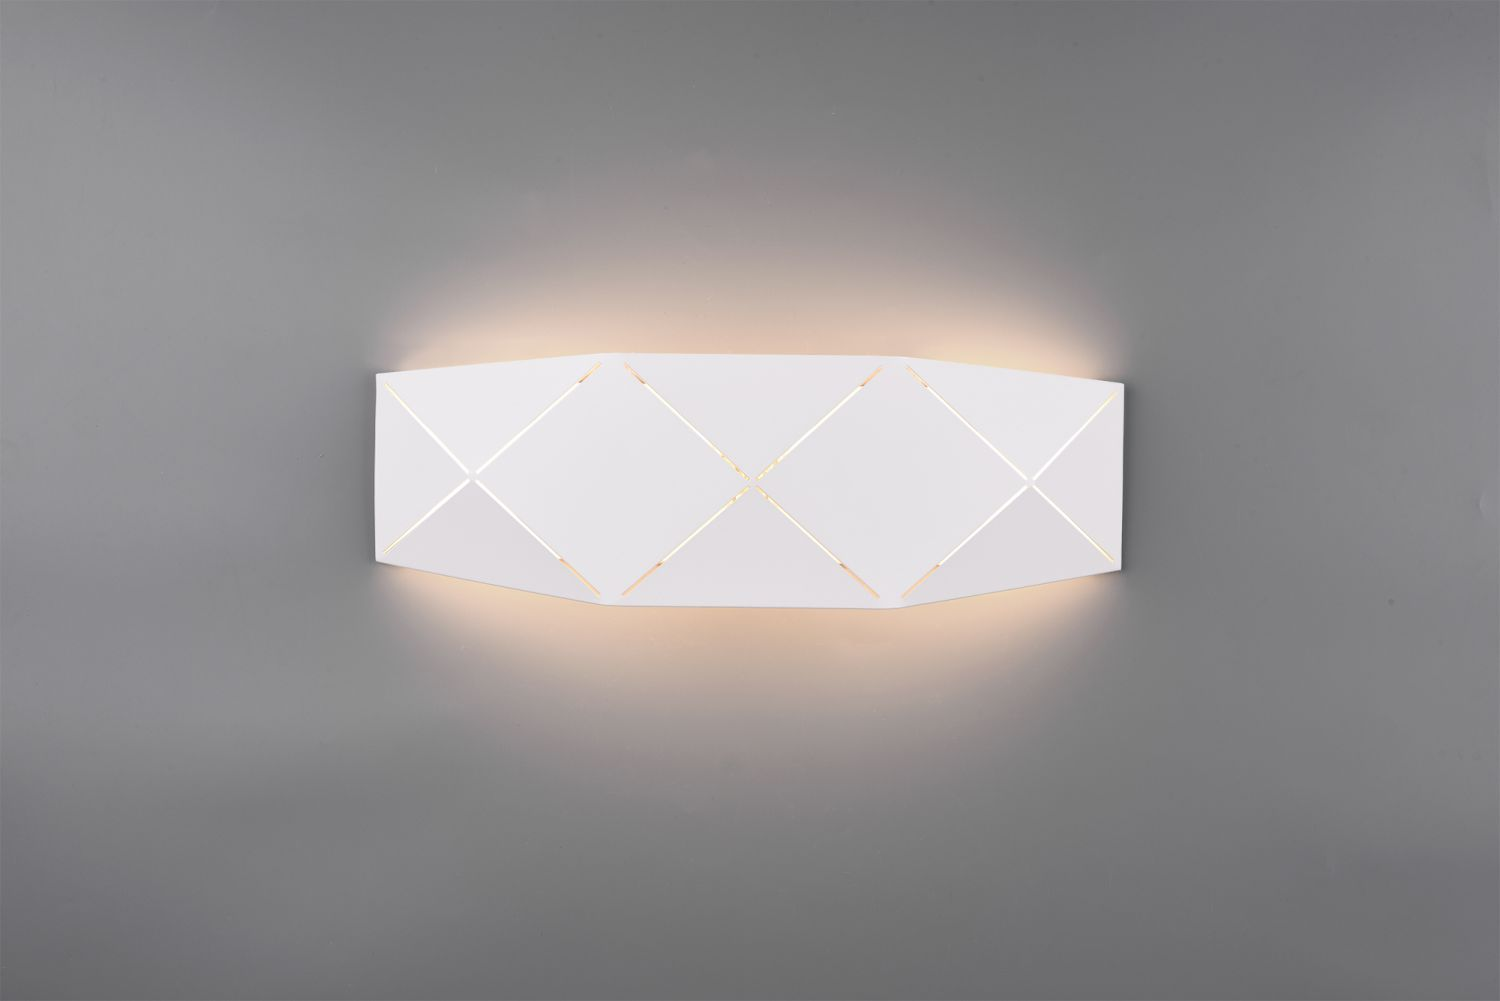 LED Wandleuchte, Up and Down, Metall, 40cm lang, Weiß